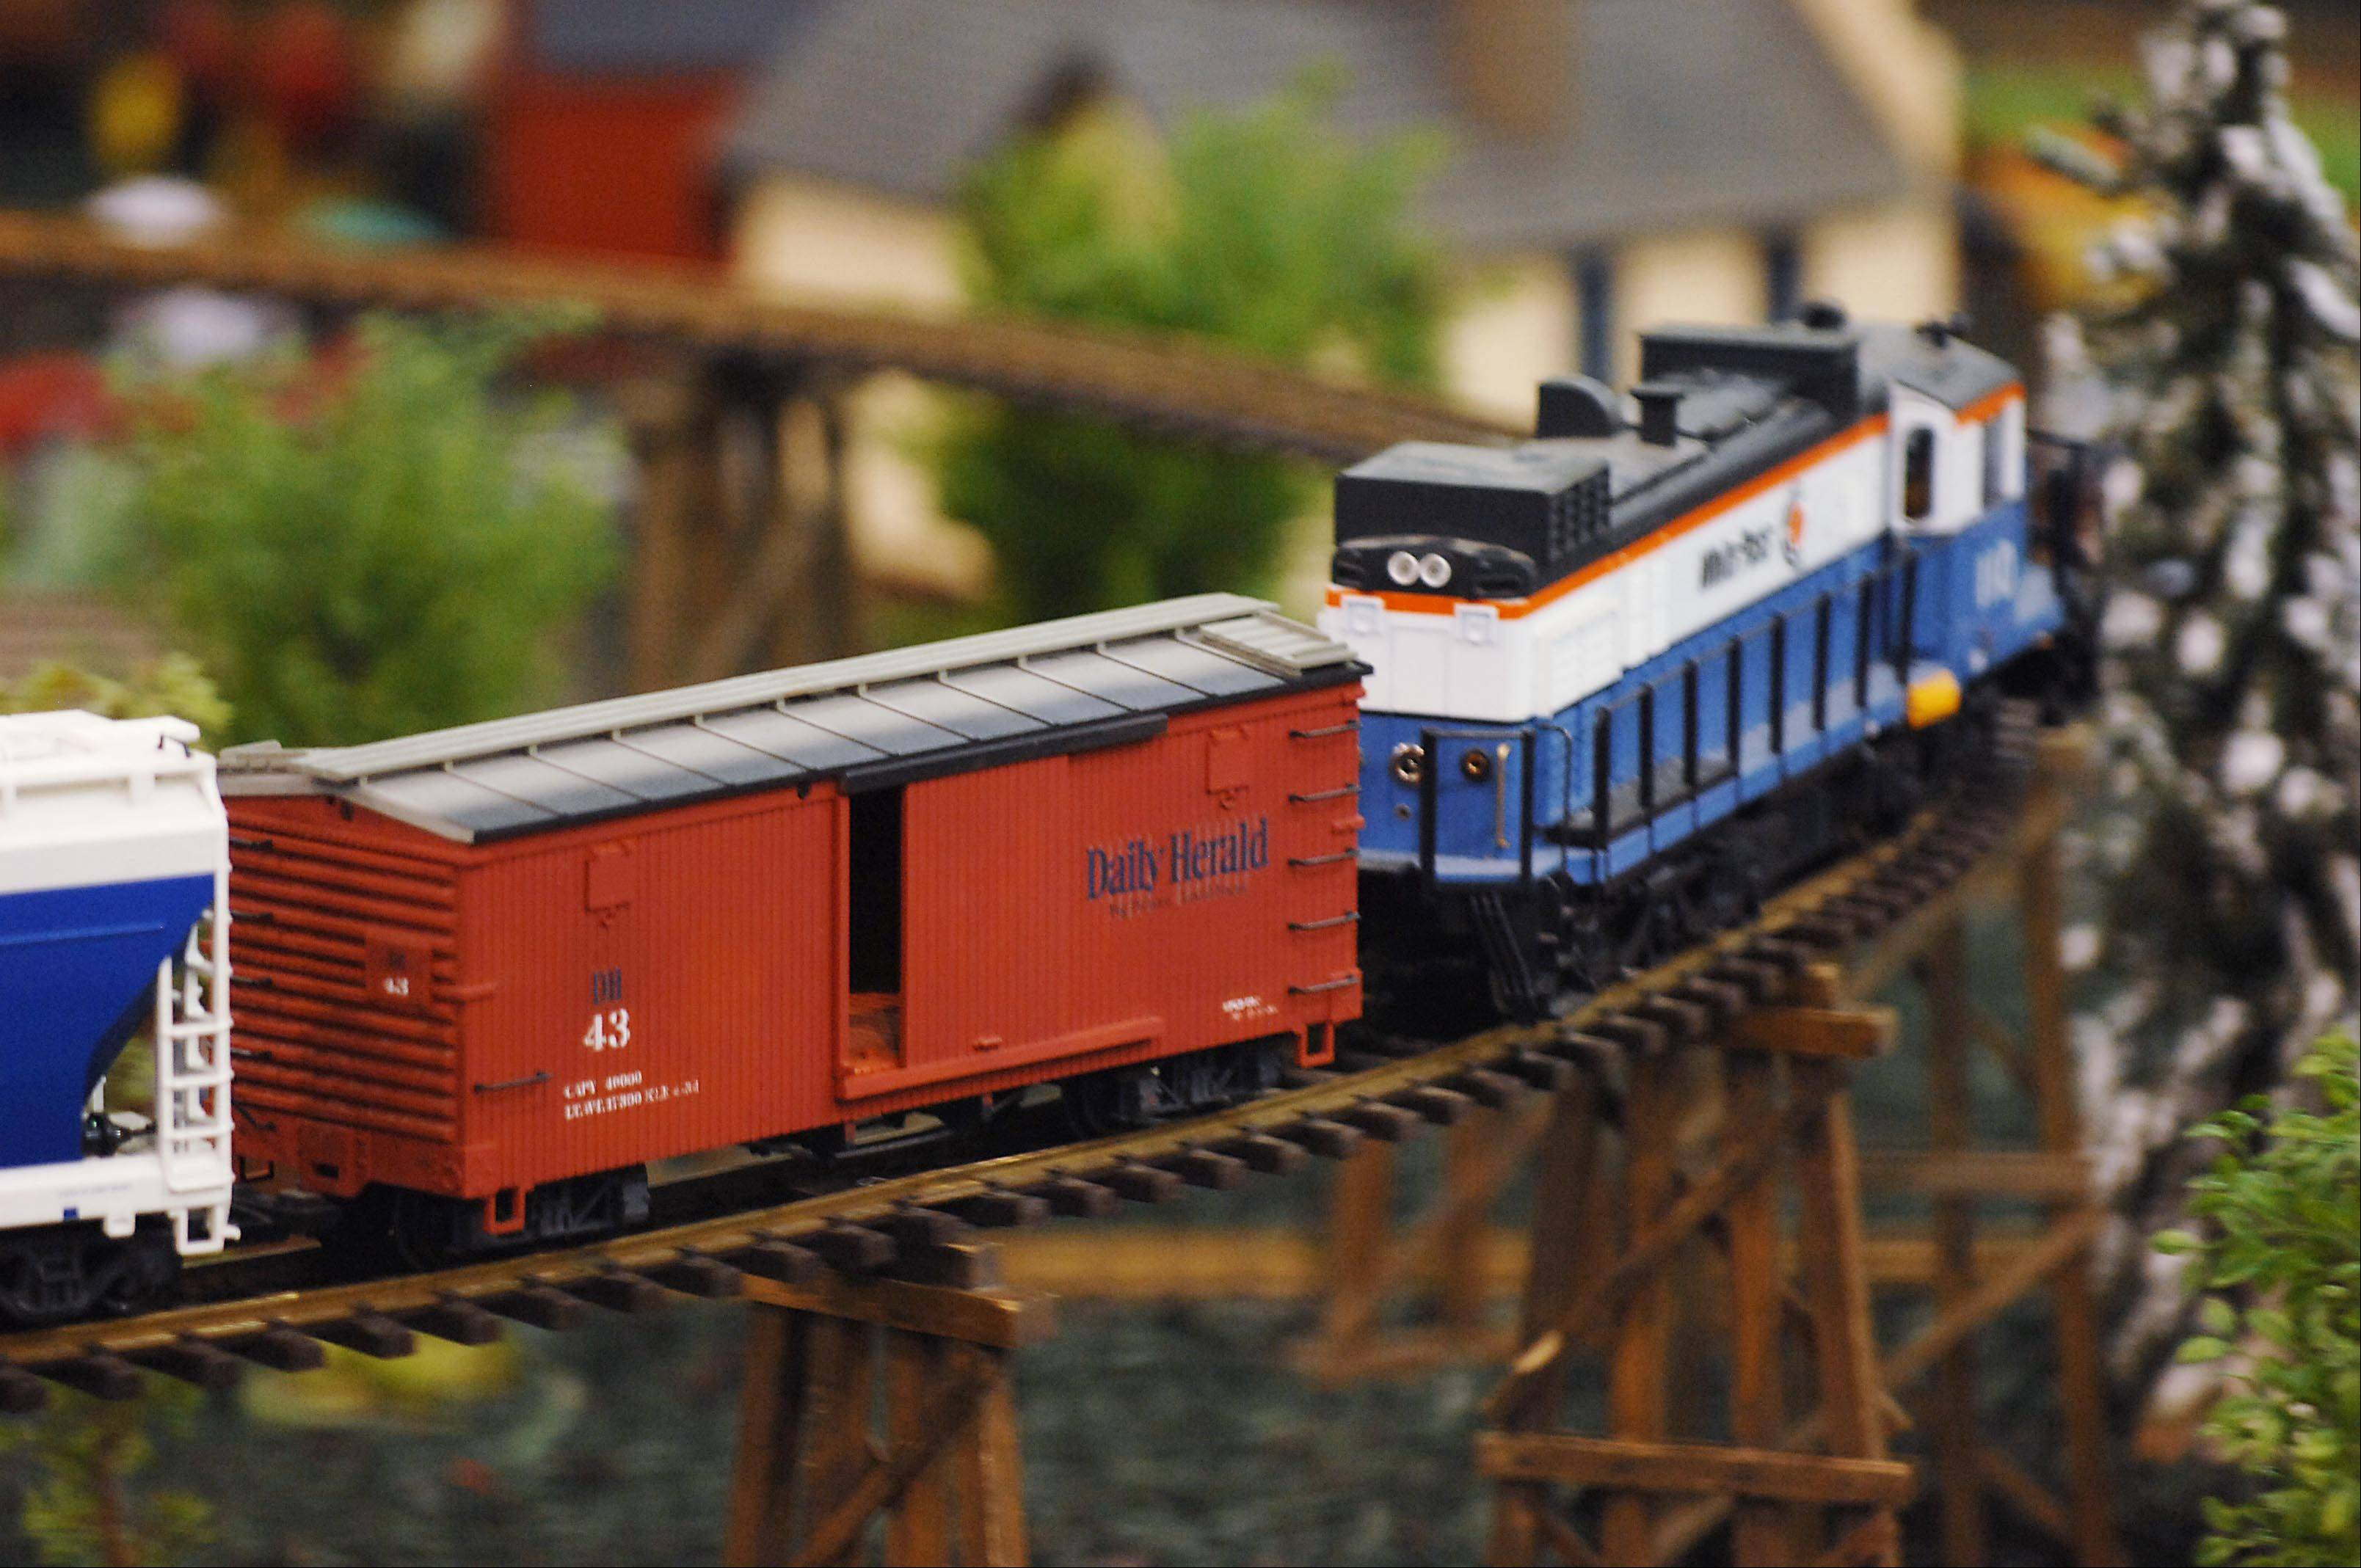 A garden scale train Sunday at the 28th National Garden Railway Convention at the Pheasant Run Resort in St. Charles. The convention brought 1,500 people from across the country to celebrate their love of model trains.